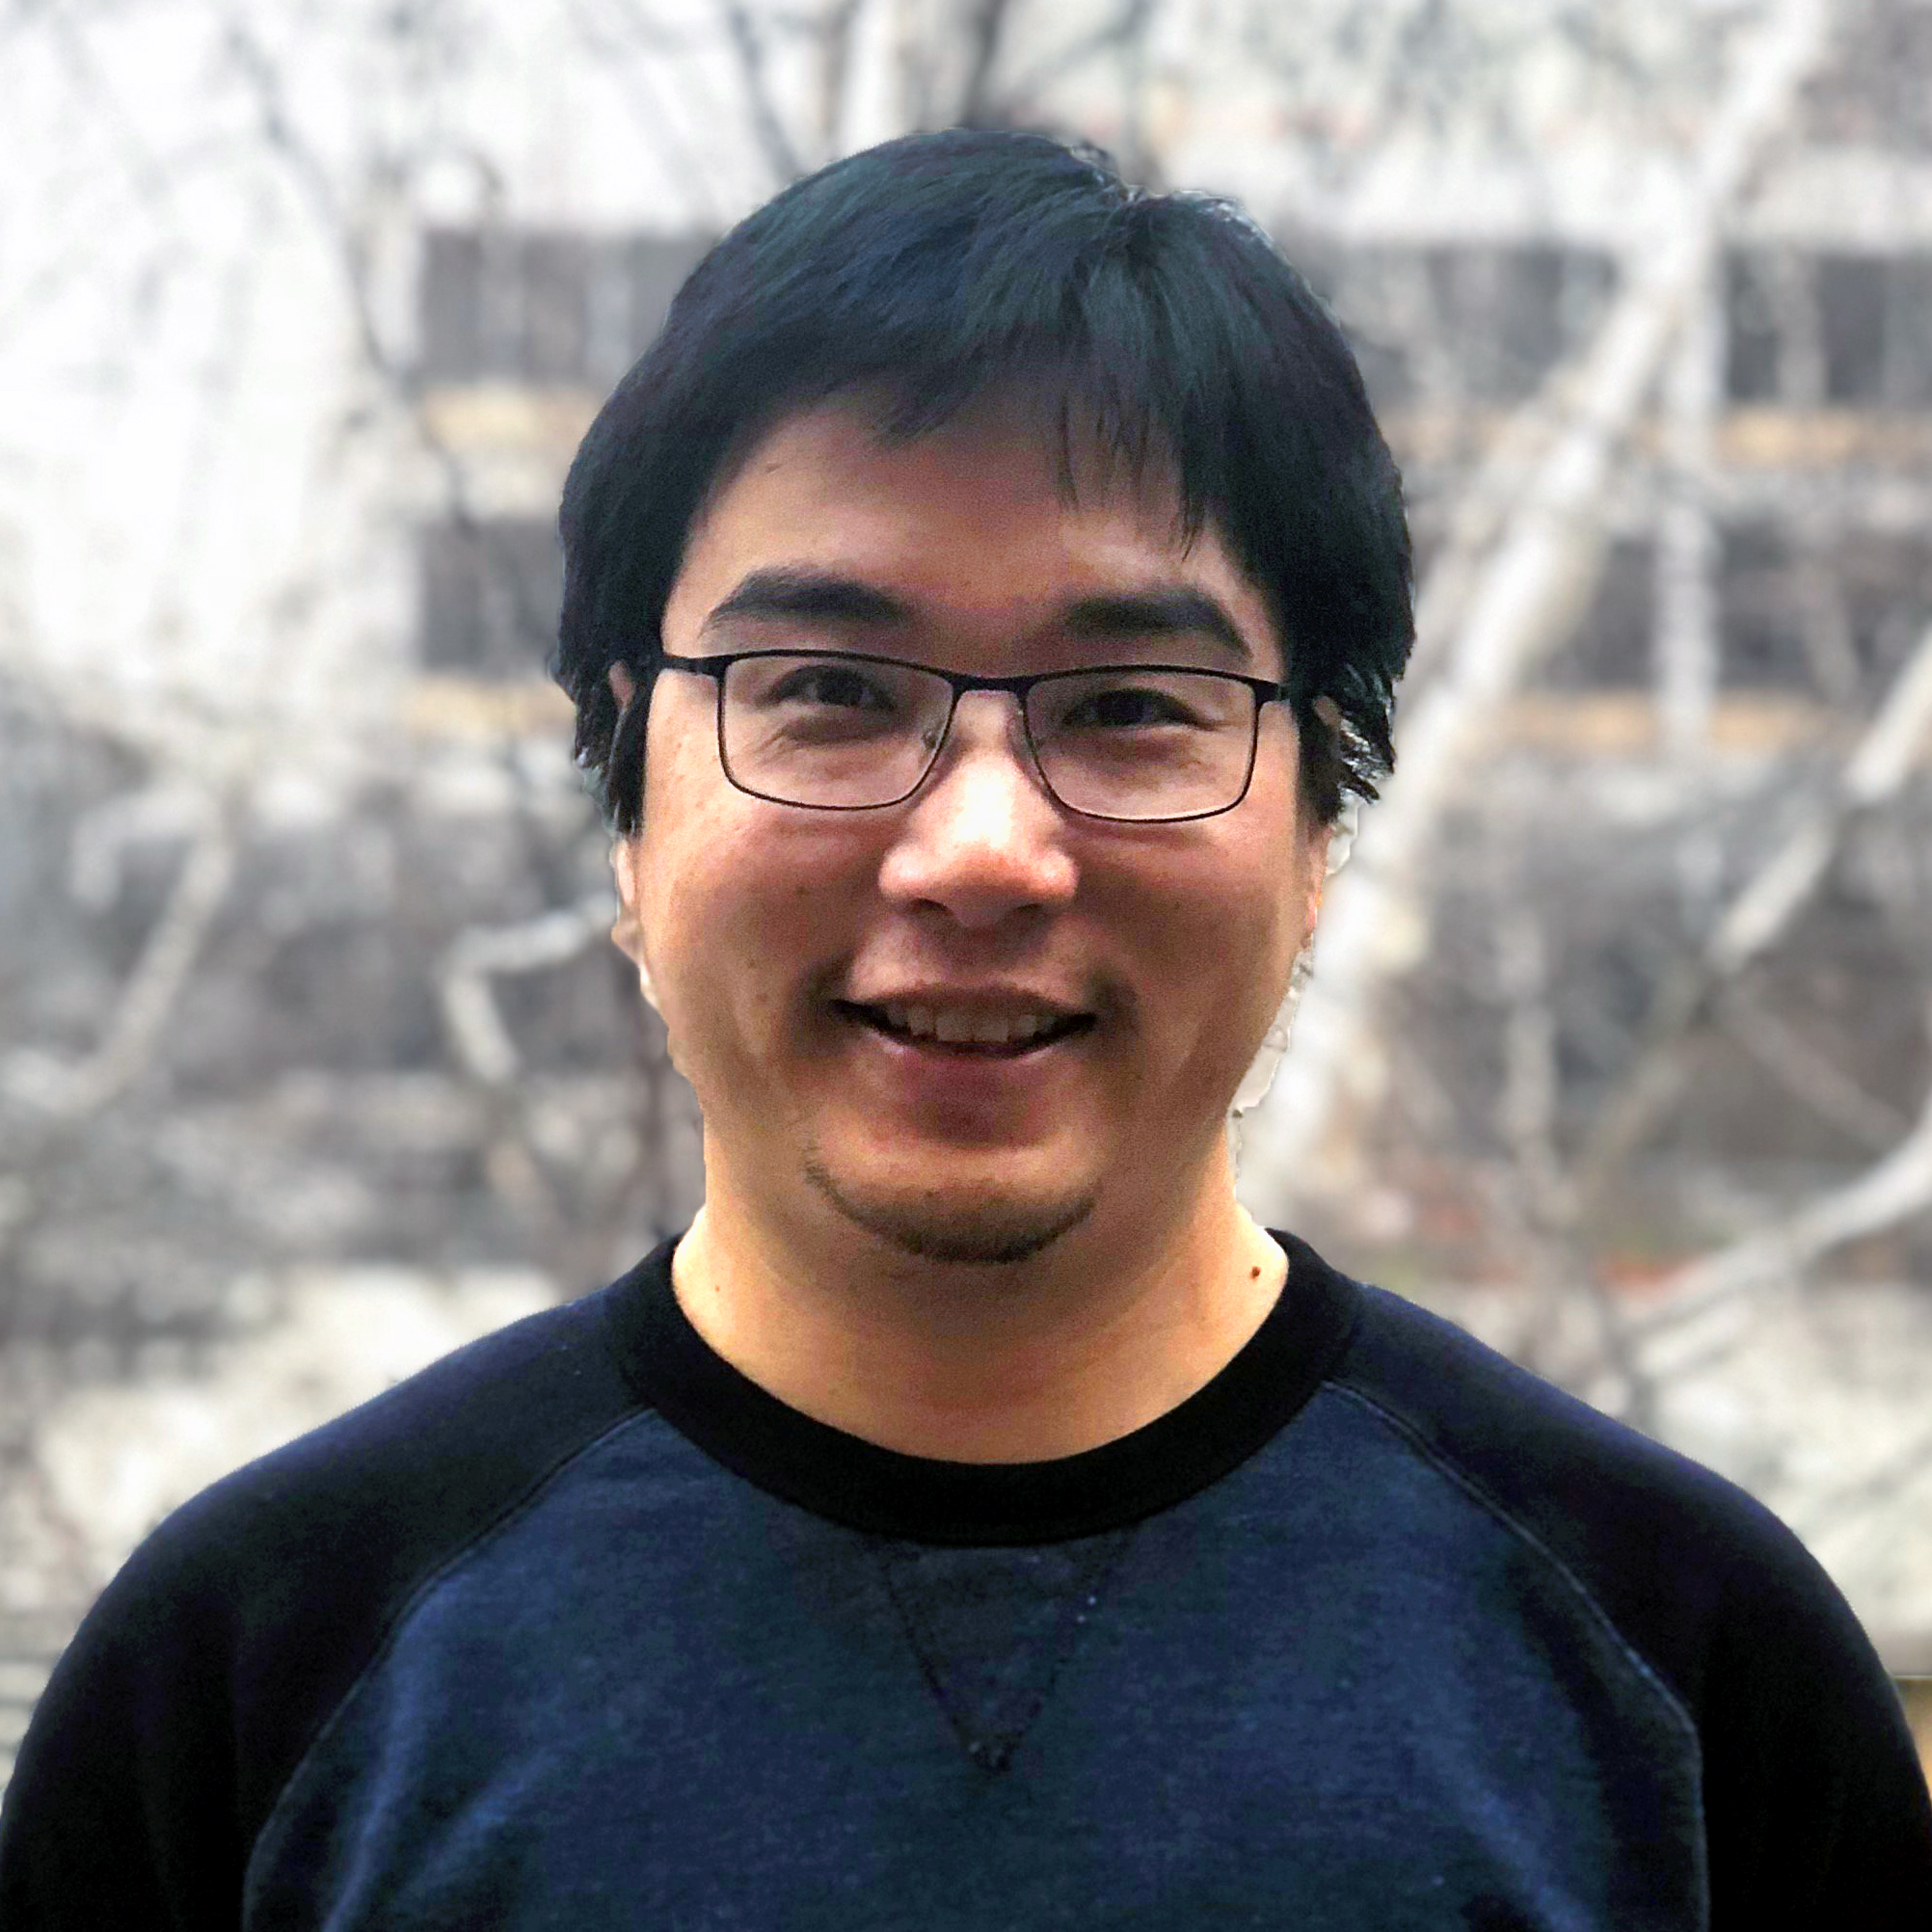 Guan Wang - Lead Application Programmer - Guan leads work with our data scientists to translate proof of concept code into prototypes capable of running in the University of Michigan Health Systems. He also provides technical expertise across MCIRCC by writing secure web applications and data processes.wanggu@umich.edu